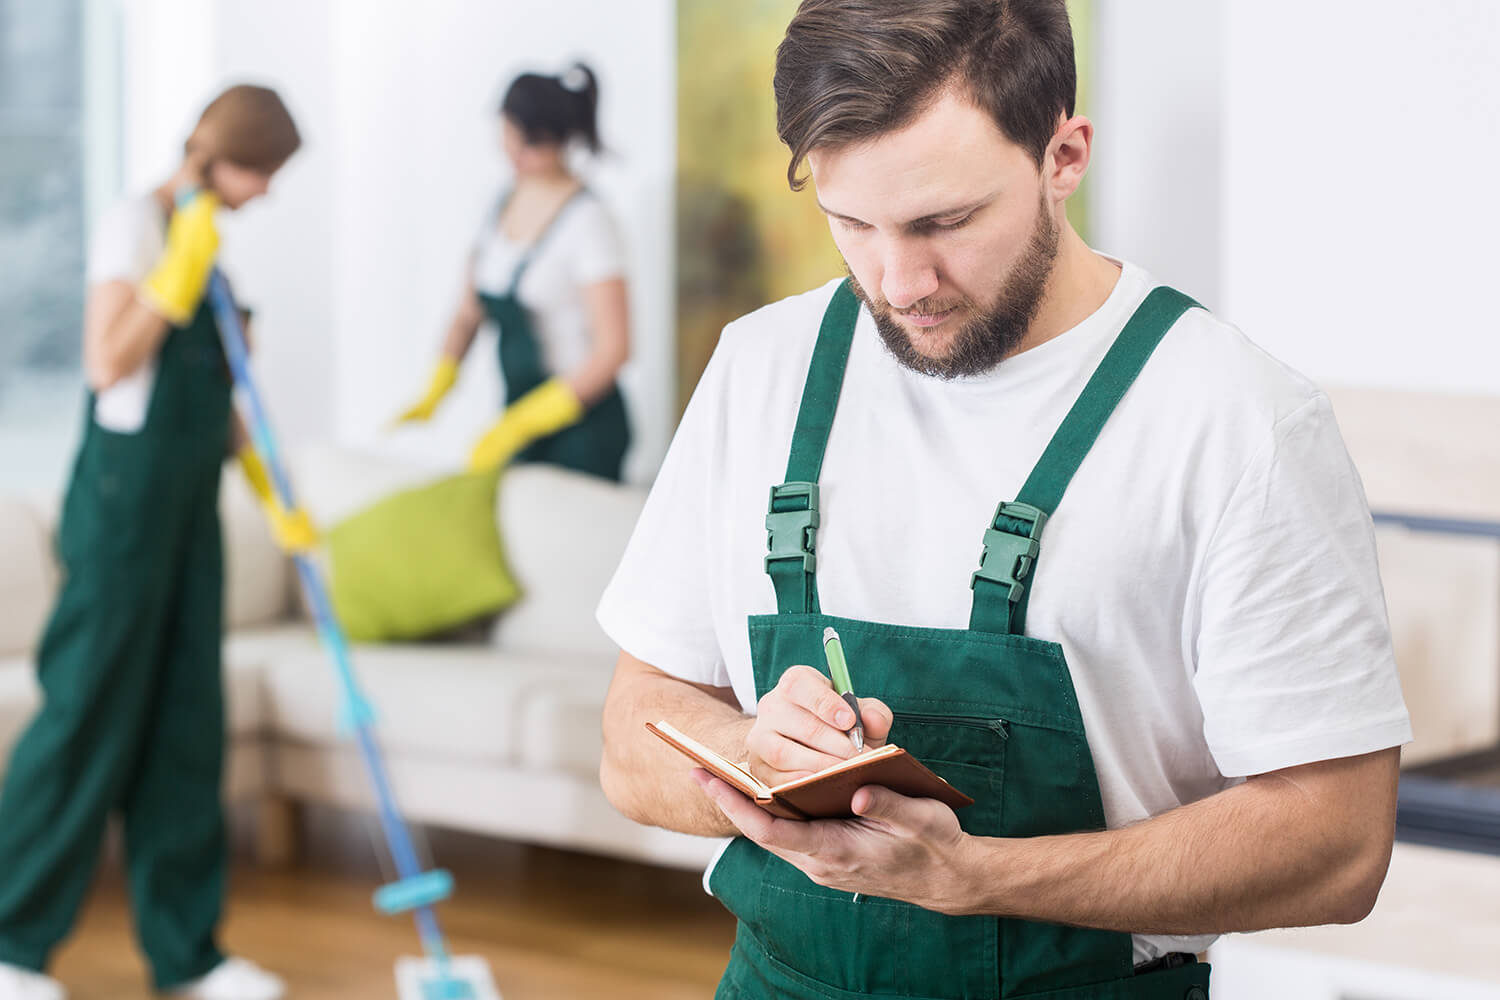 Contact Us-Broward County Commercial Cleaning Services-We offer Office Building Cleaning, Commercial Cleaning, Medical Office Cleaning, School Cleaning, Janitorial Services, Health Care Facility Cleaning, Daycare Cleaning, Commercial Floor Cleaning, Bank Cleaning, Gym Cleaning, Commercial Carpet Cleaning, Industrial Cleaning, Warehouse Cleaning, Construction Cleaning, Porter Services, and much more!